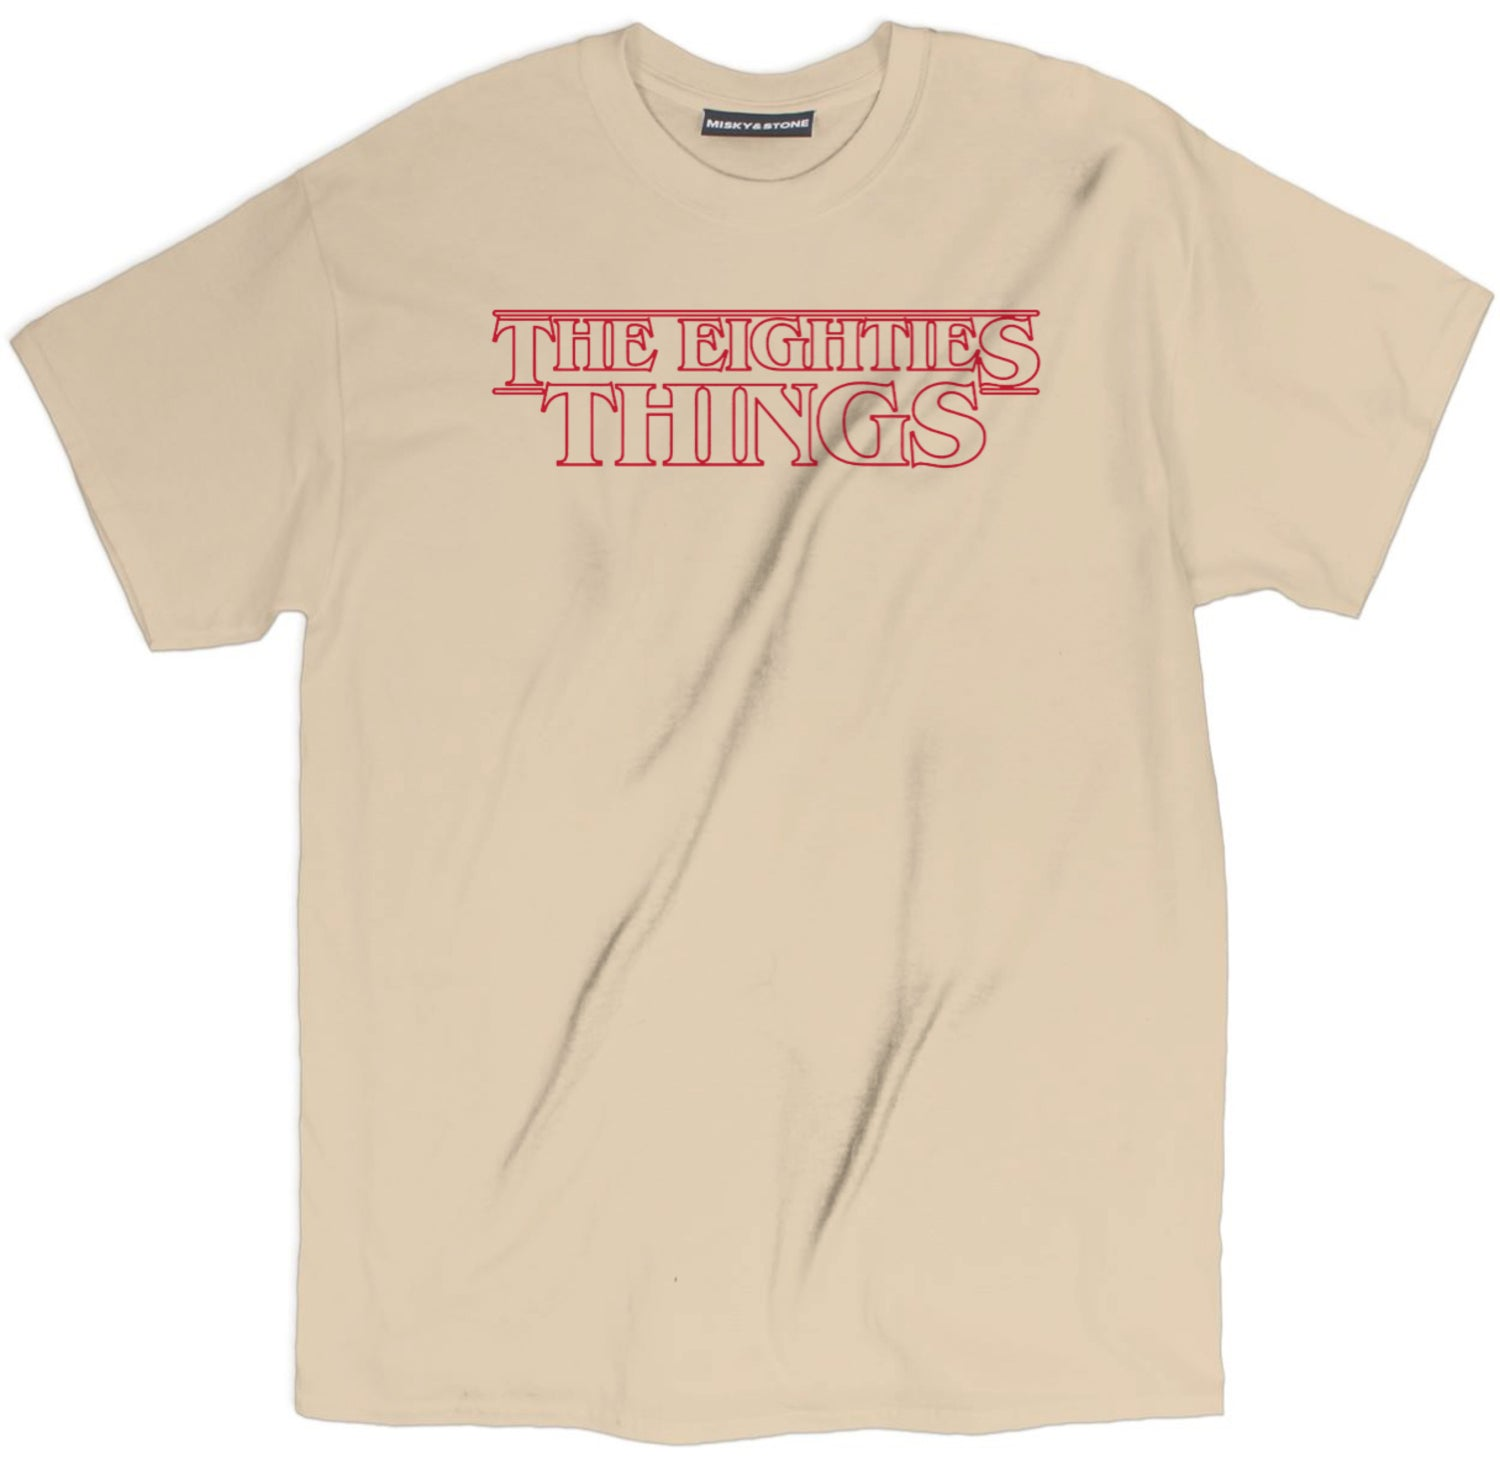 Eighties Things Shirt